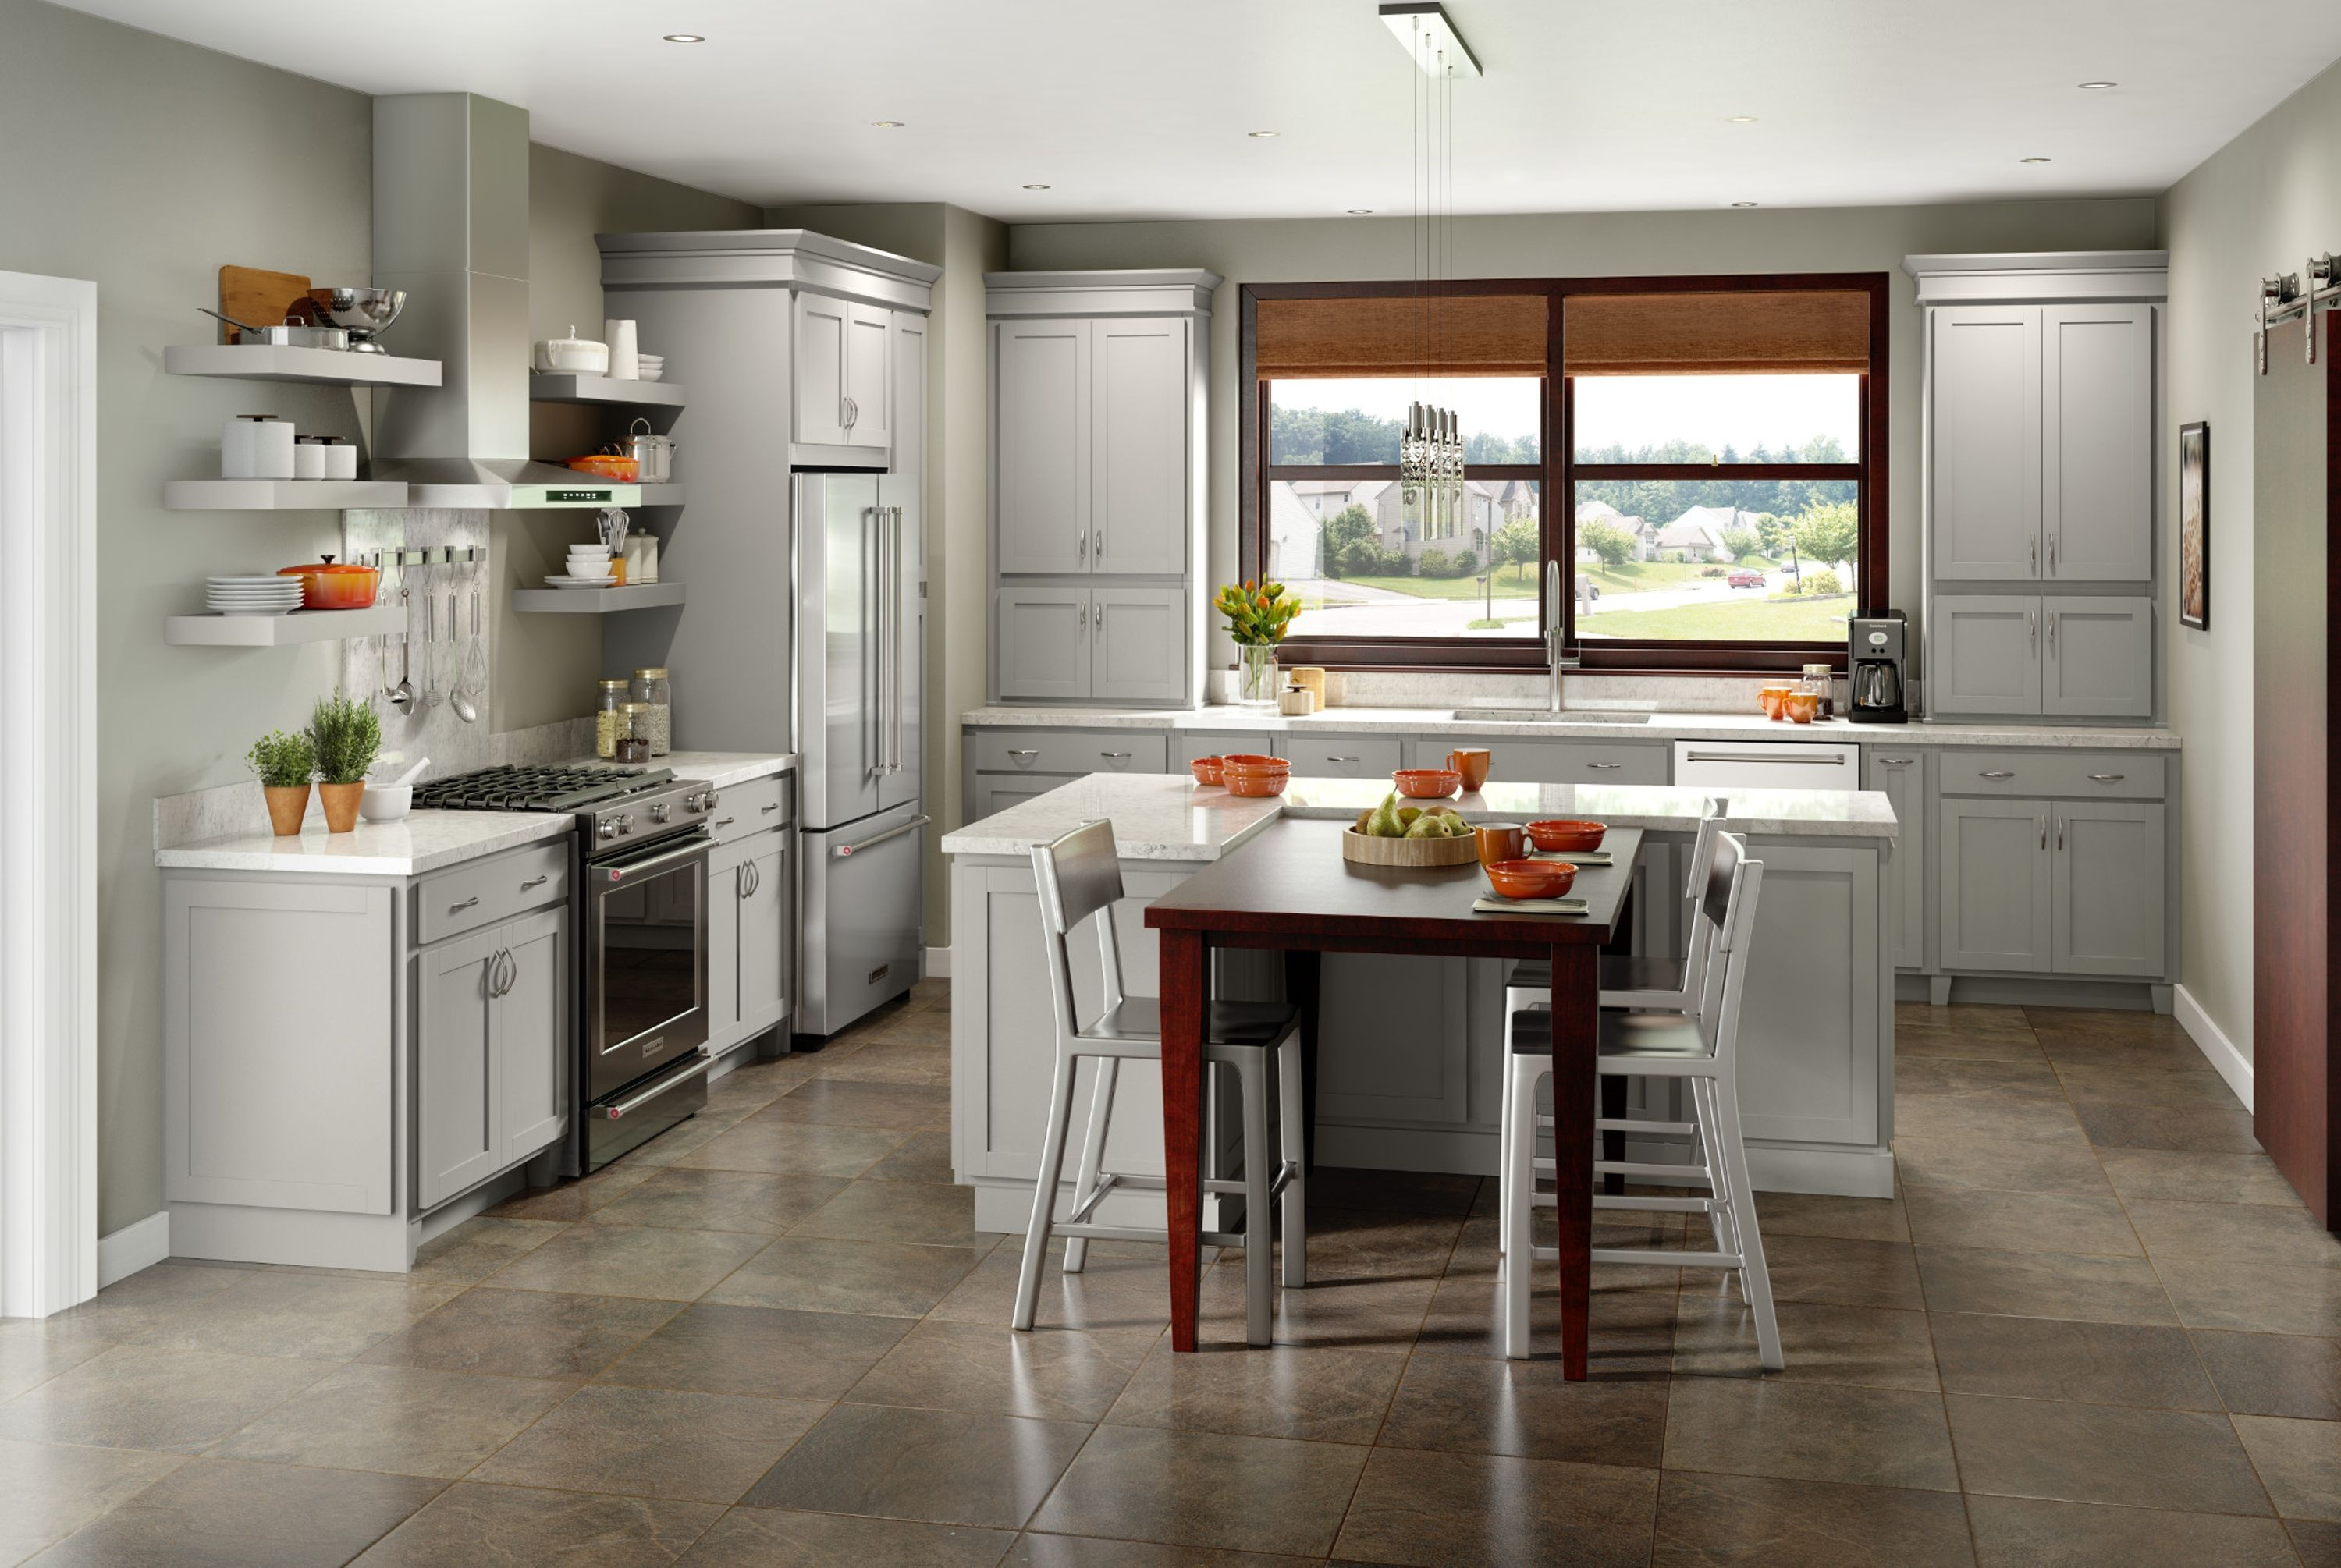 San Mateo Collection American Woodmark American Woodmark Cabinets Custom Kitchen Cabinets Kitchen And Bath Remodeling